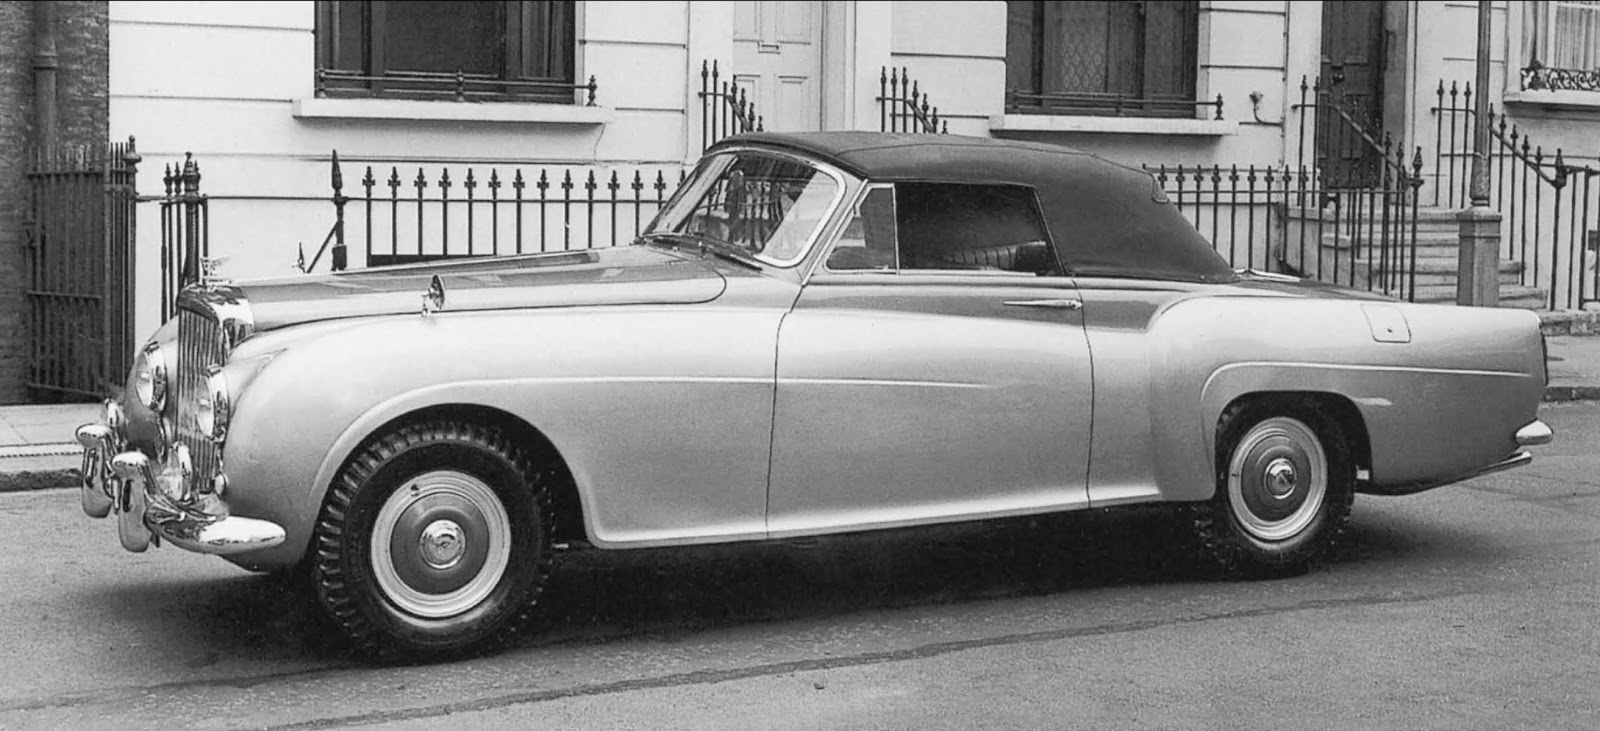 19542BChaprin bodied2BBentley2BR Type2BContinental2BDrophead2BCoupe 11 σταθμοί στην 100χρονη πορεία της Bentley